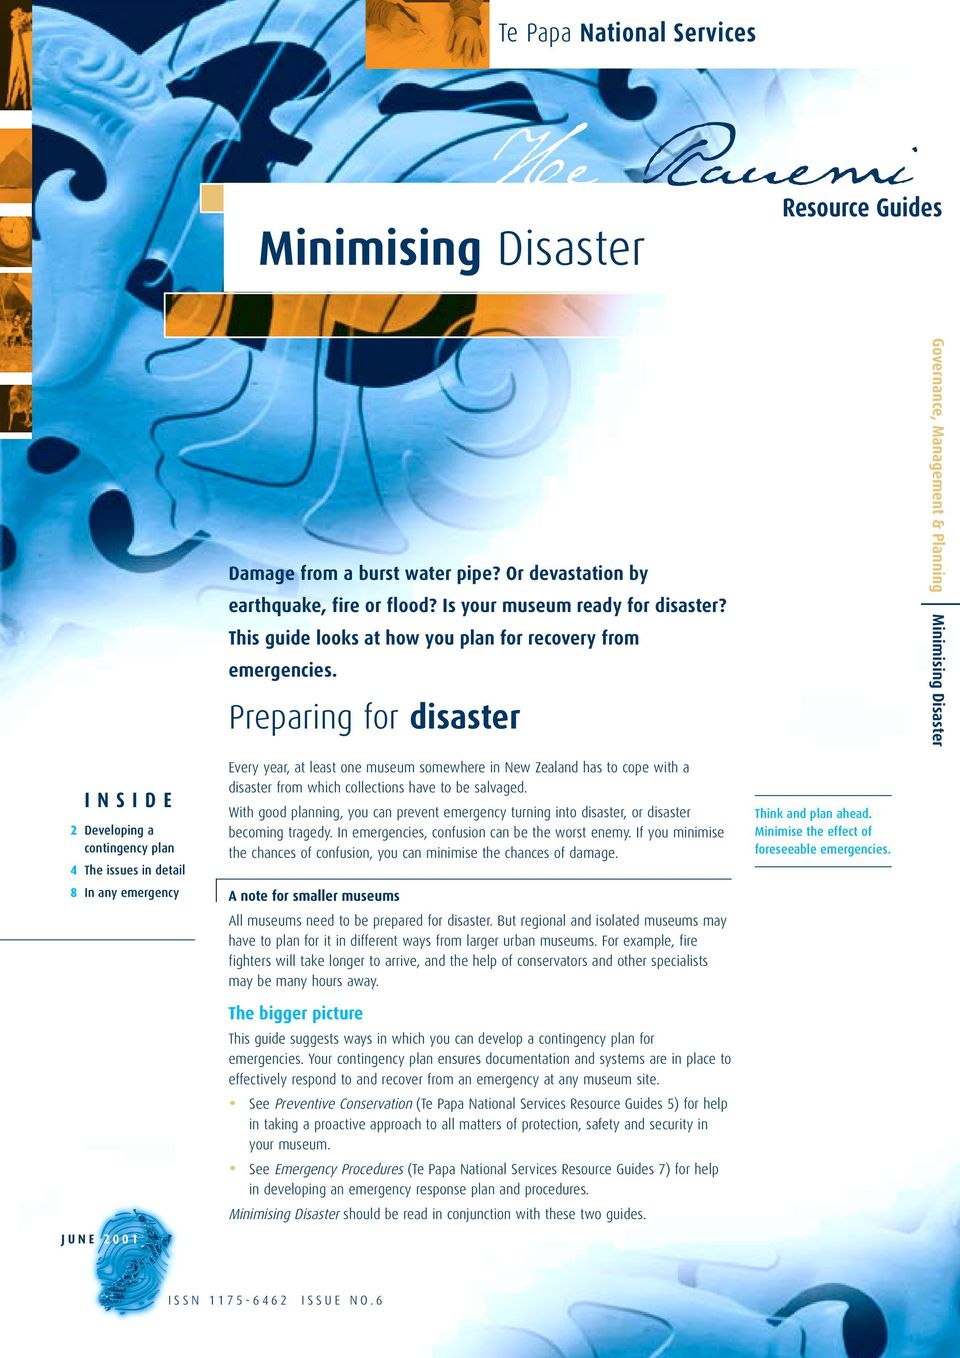 Preparing for disaster Governance, Management & Planning Minimising Disaster INSIDE 2 Developing a contingency plan 4 The issues in detail 8 In any emergency JUNE 2001 Every year, at least one museum